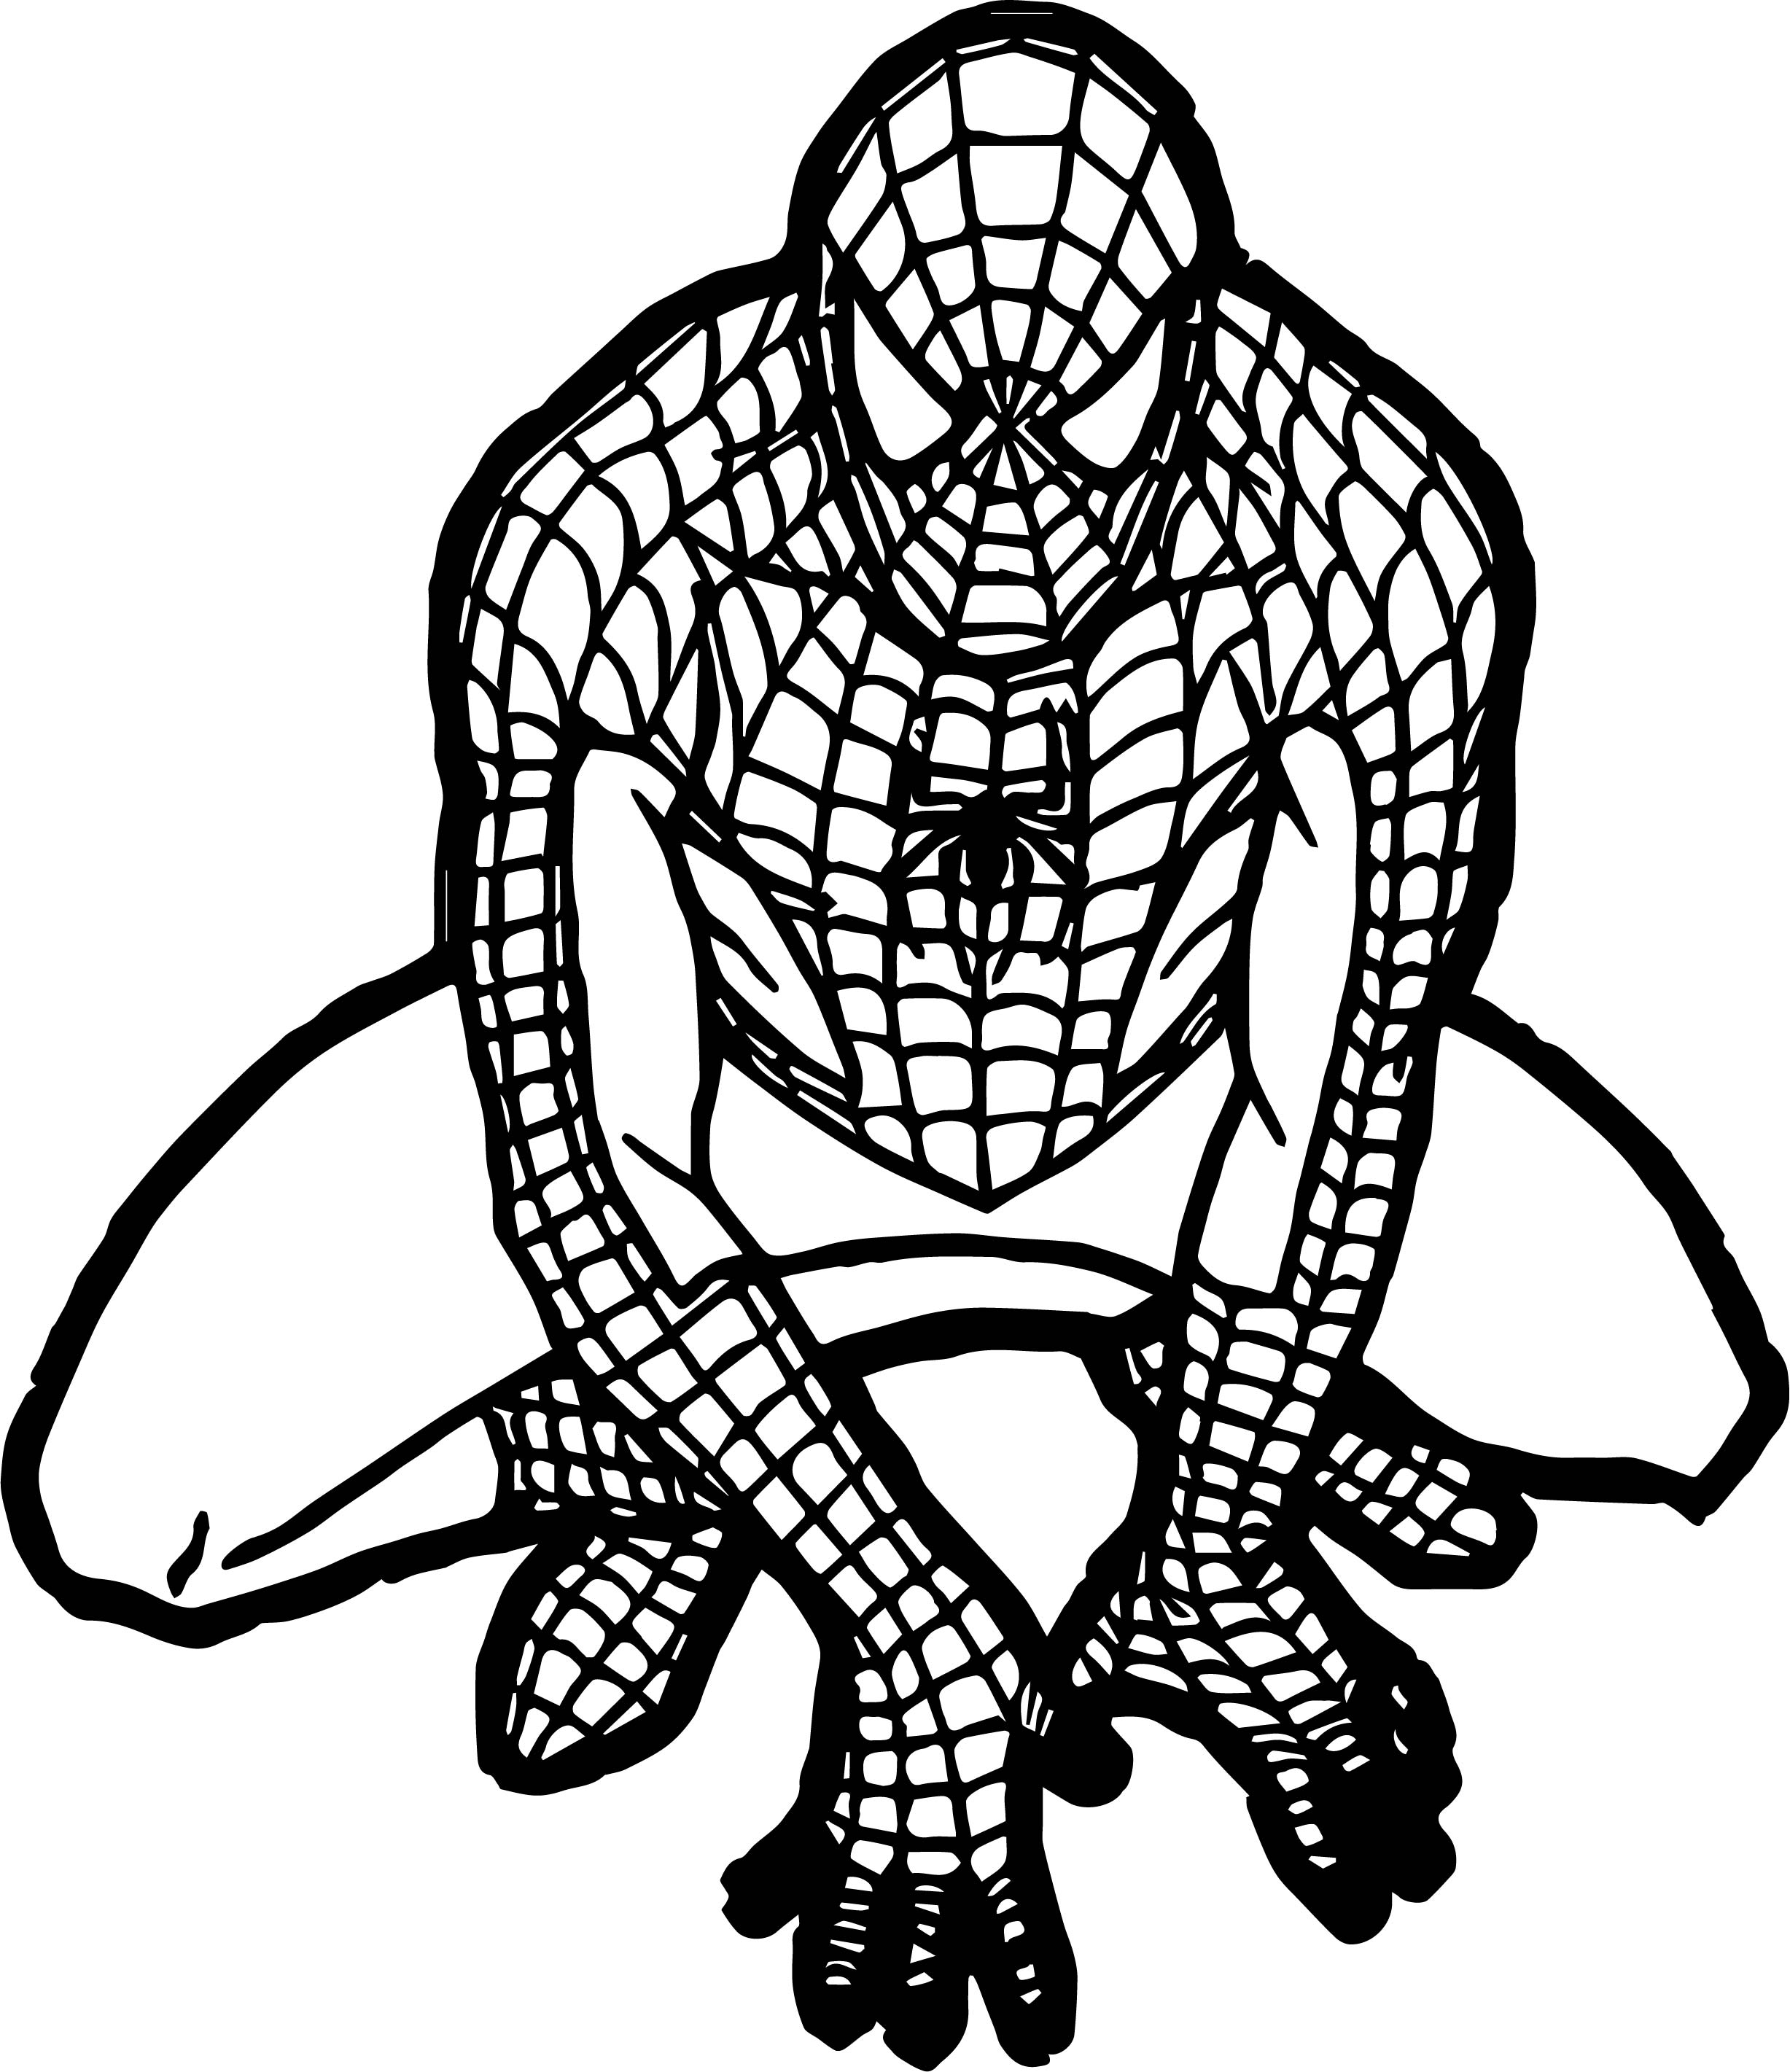 2455x2842 Baby Spiderman Free Spider Man Coloring Page Wecoloringpage